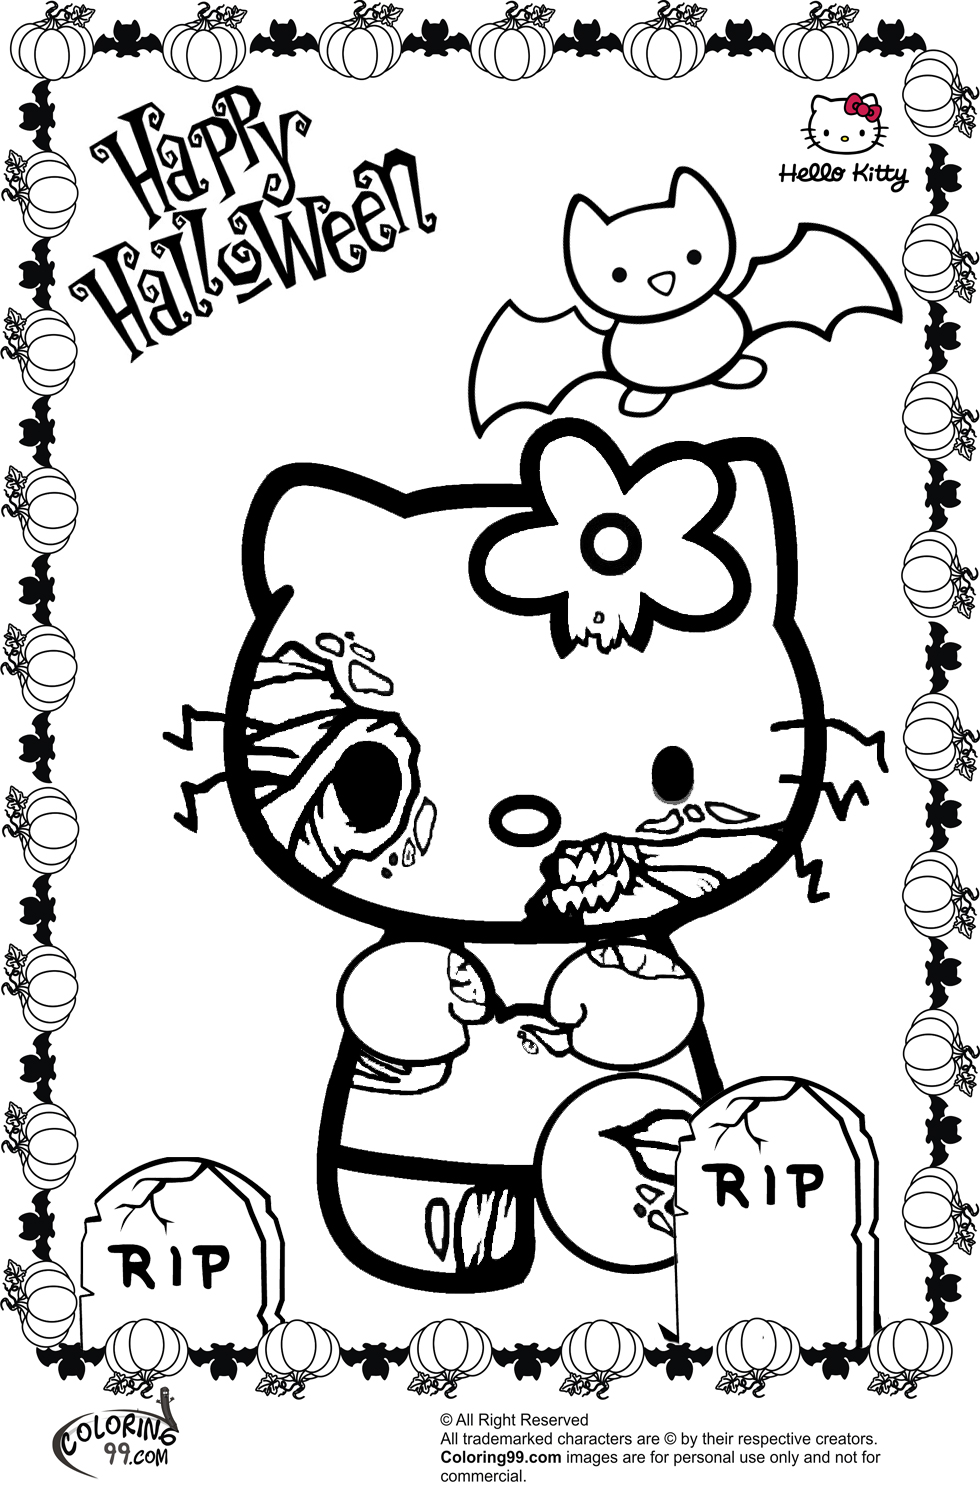 printable coloring pages halloween | Hello Kitty Halloween Coloring Pages | Minister Coloring